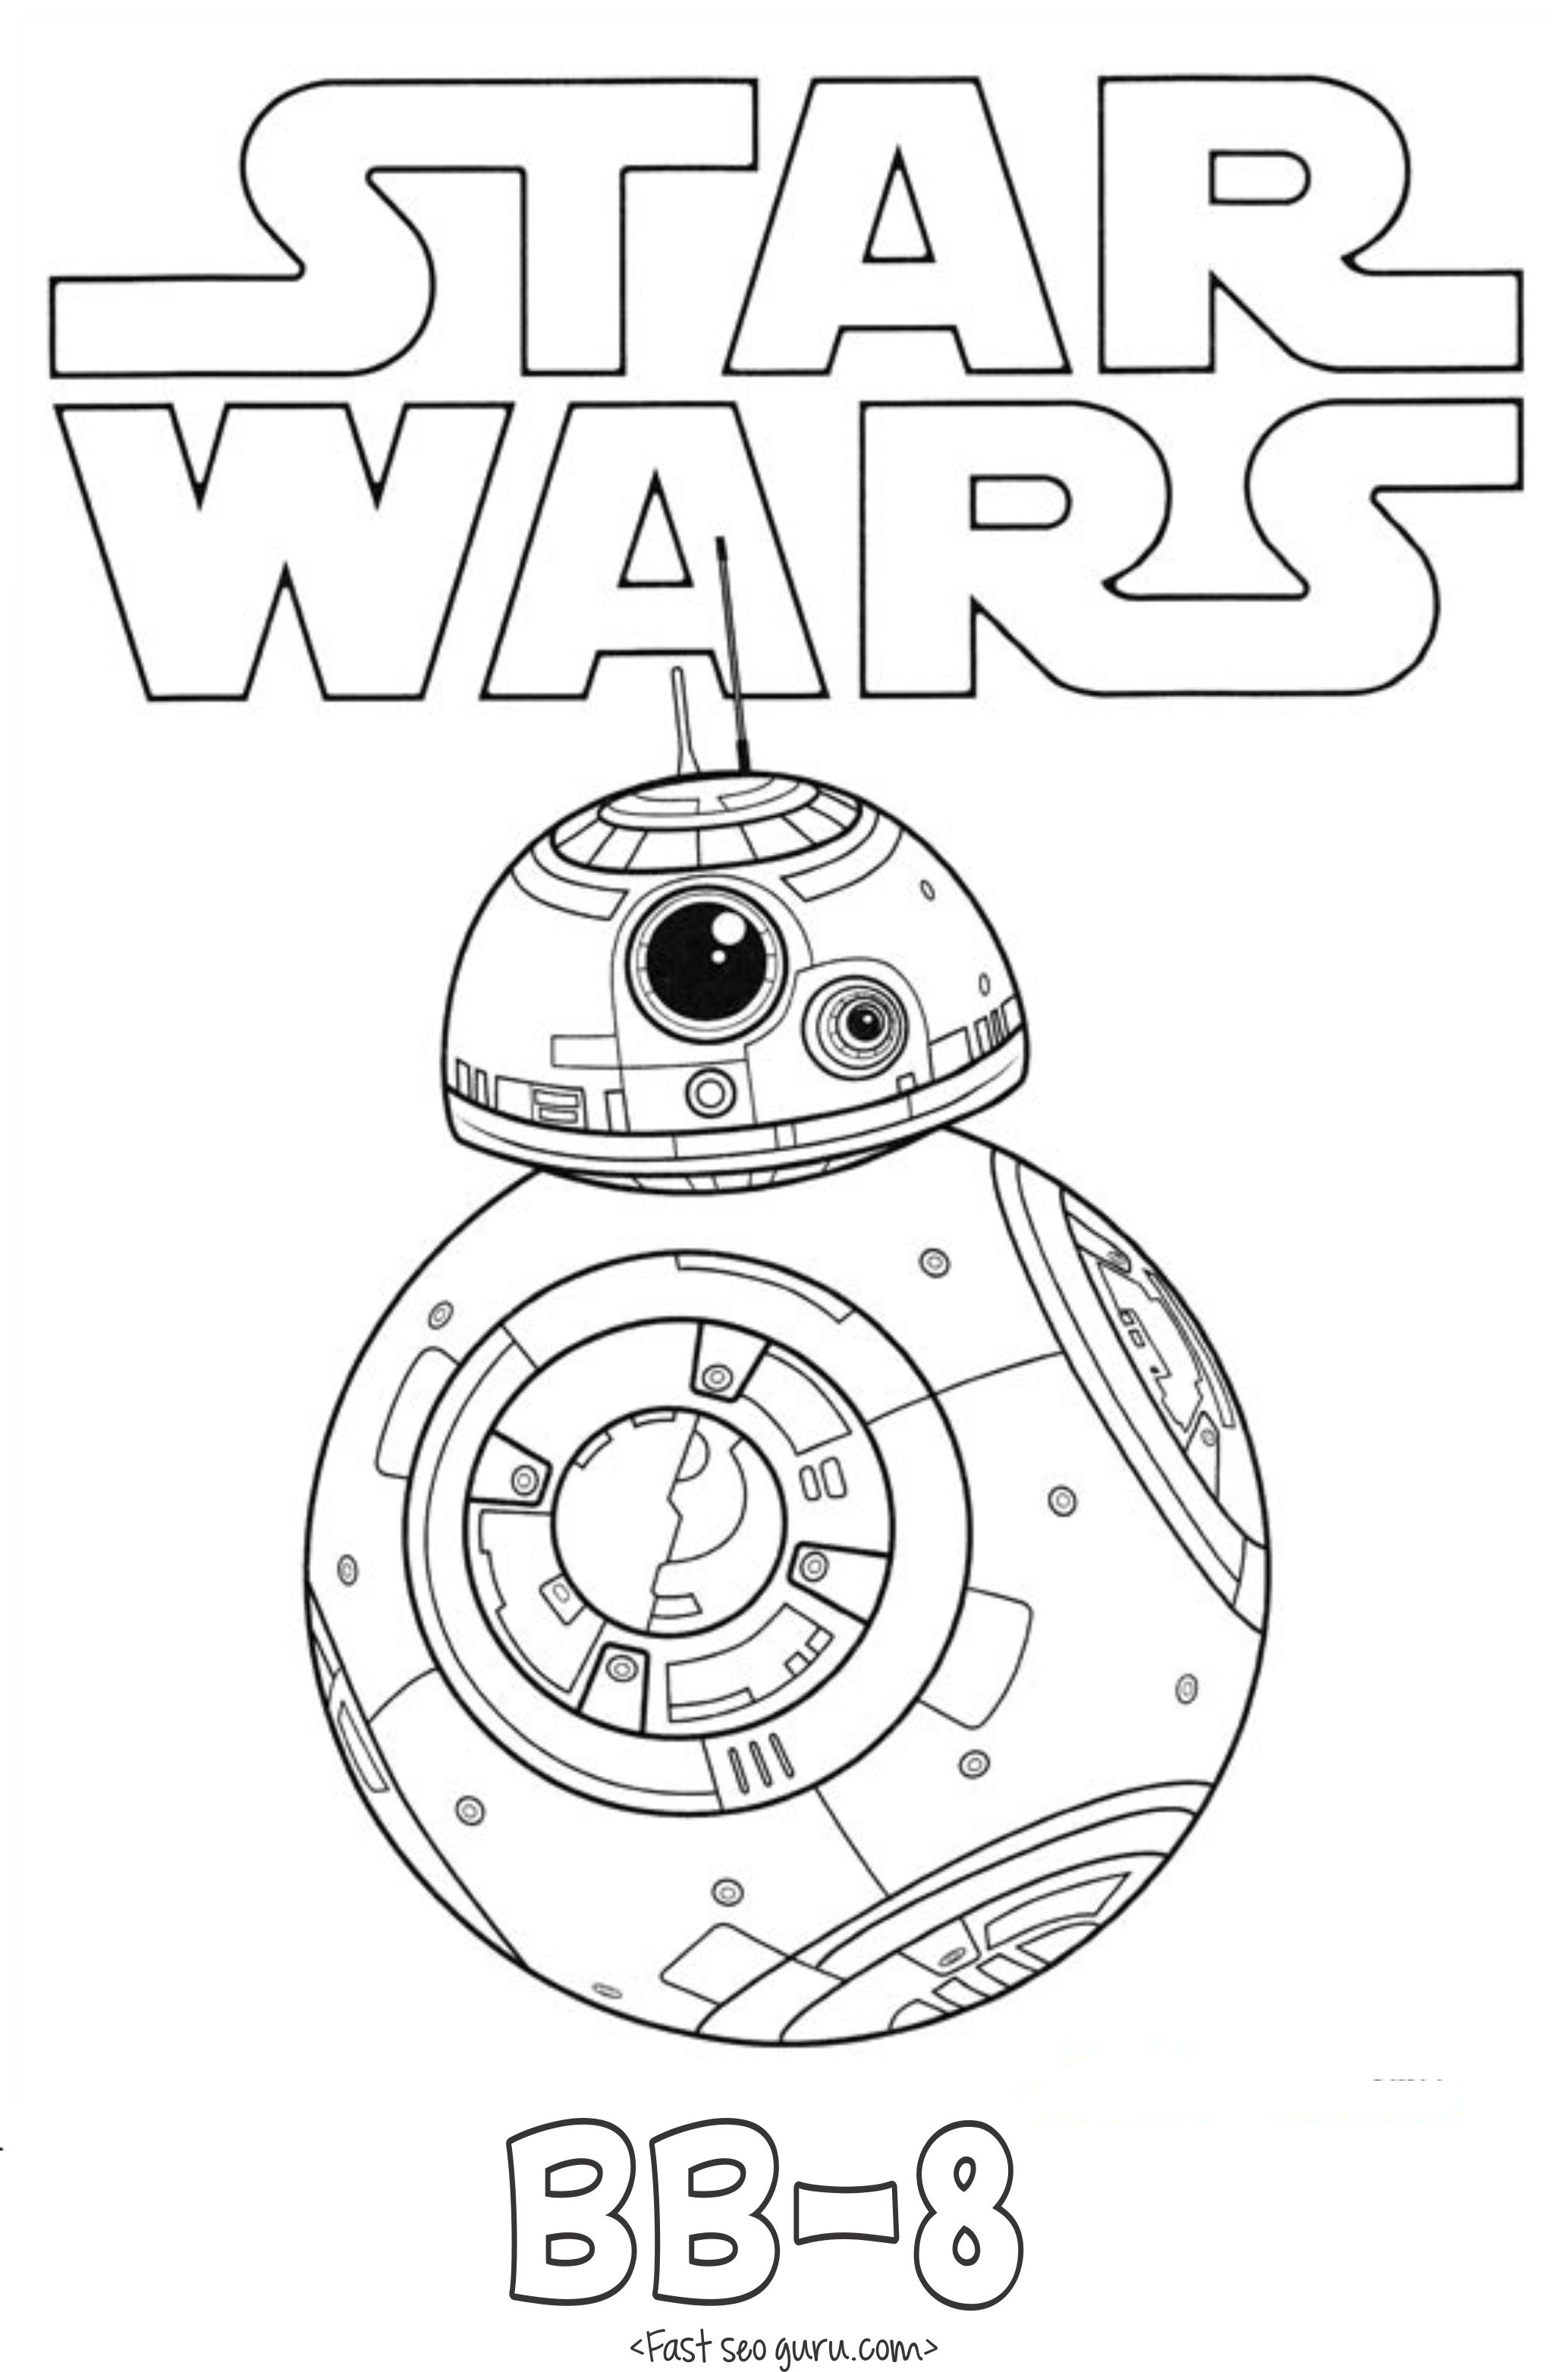 star wars the force awakens bb 8 coloring pages kiddos coloringstar wars the force awakens bb